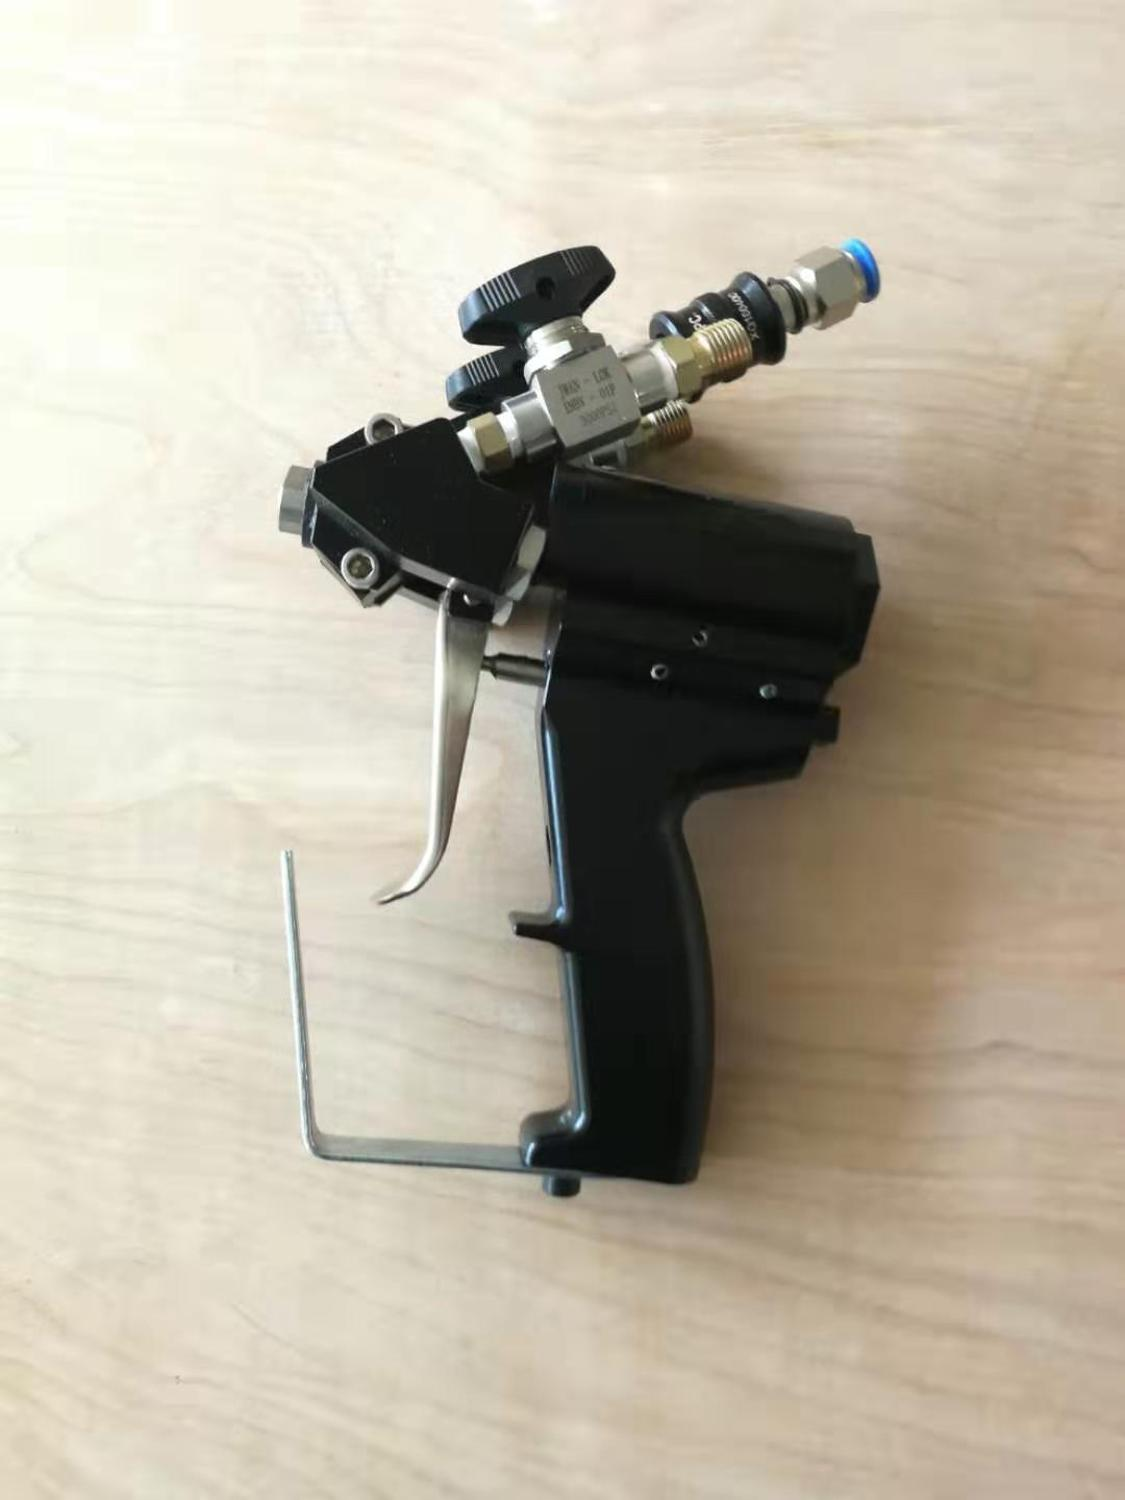 P2 PU polyurethane Foam spray gun  with 2nozzles and 3 Orings for sale enlarge